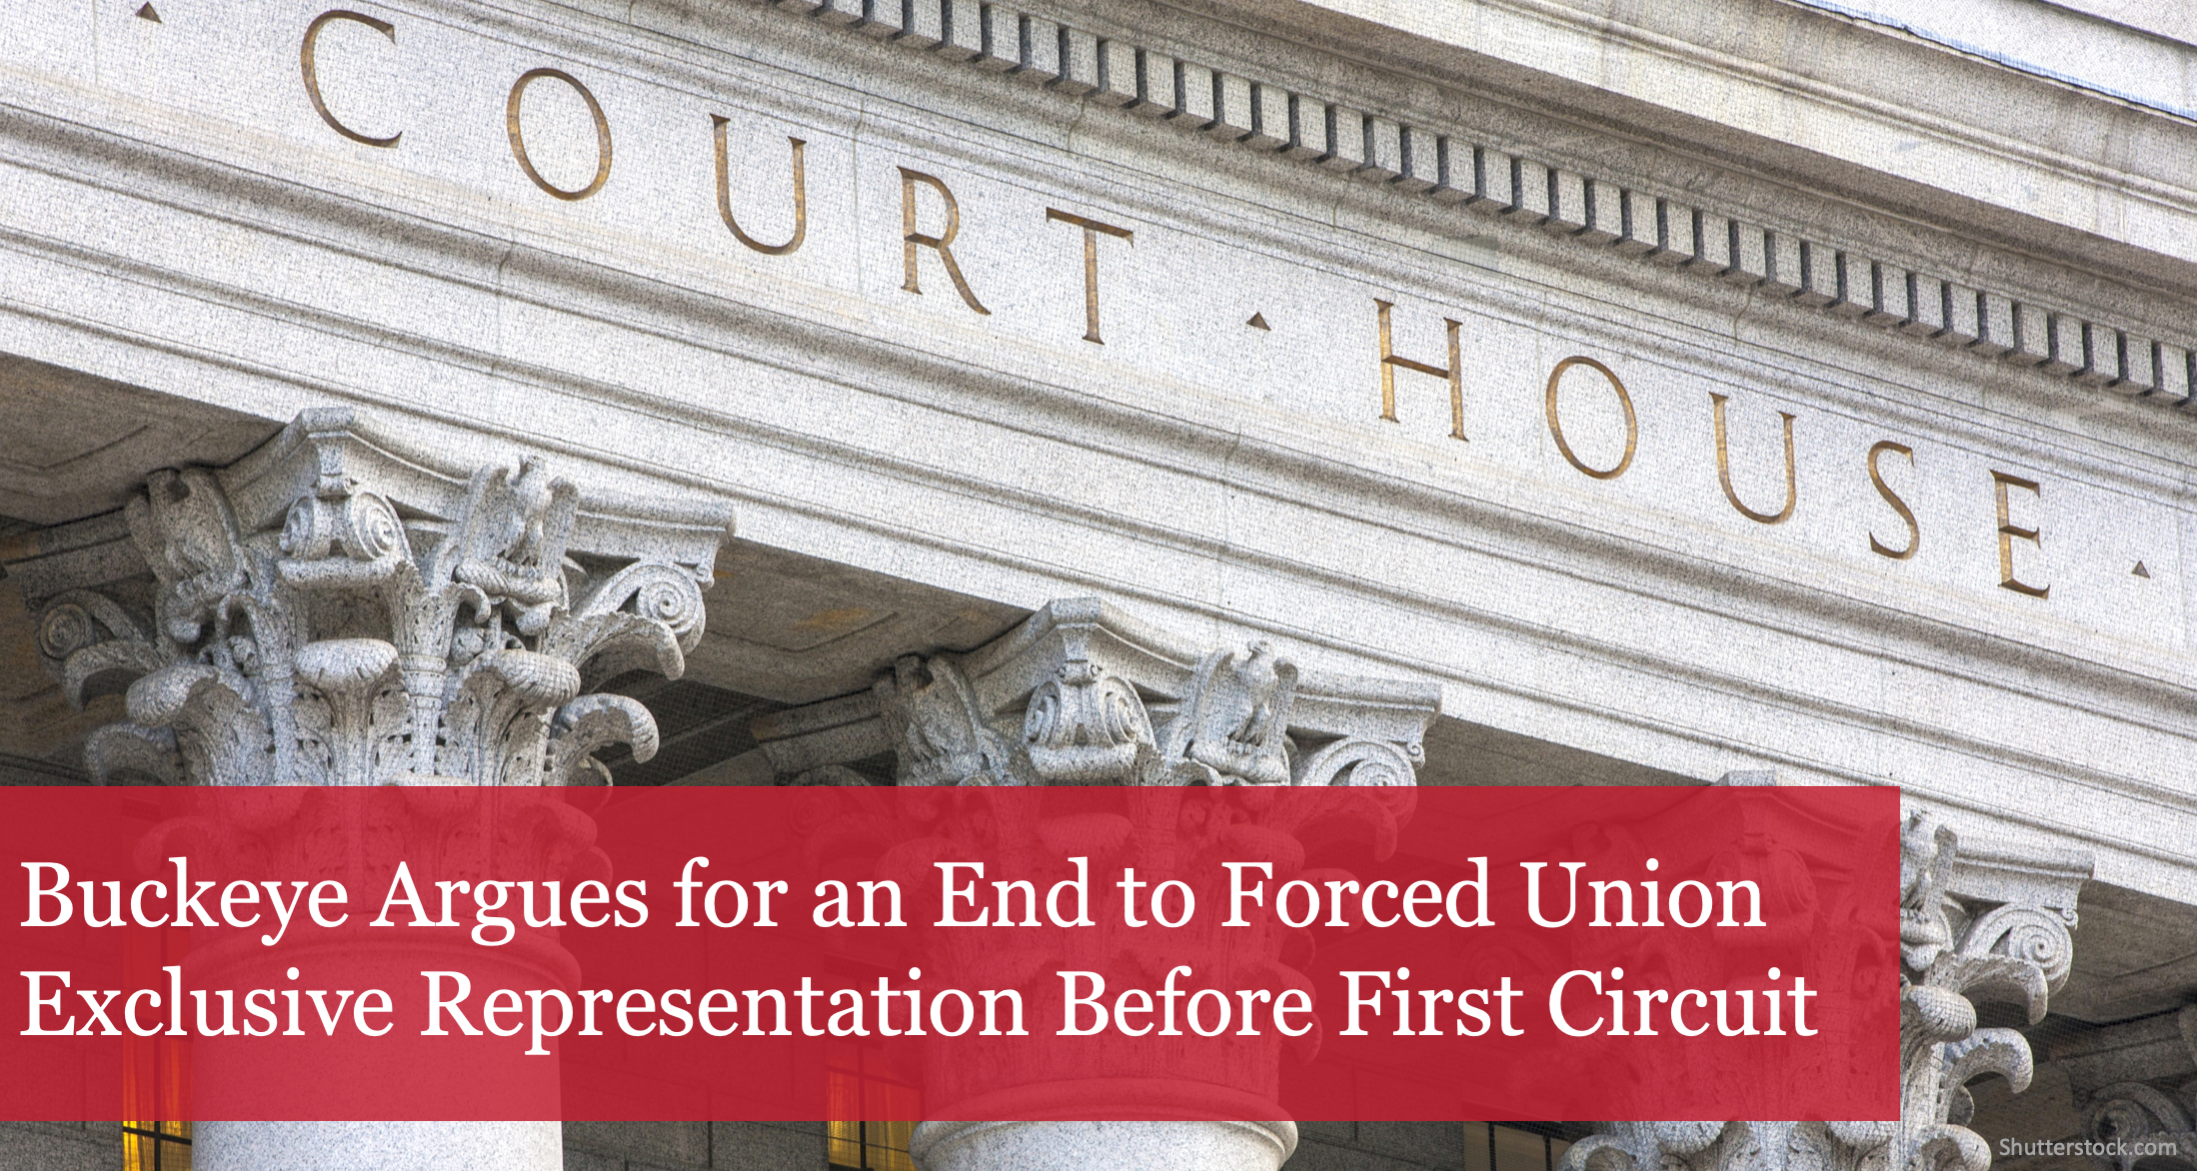 The Buckeye Institute Calls on First Circuit Court of Appeals to End Forced Union Exclusive Representation